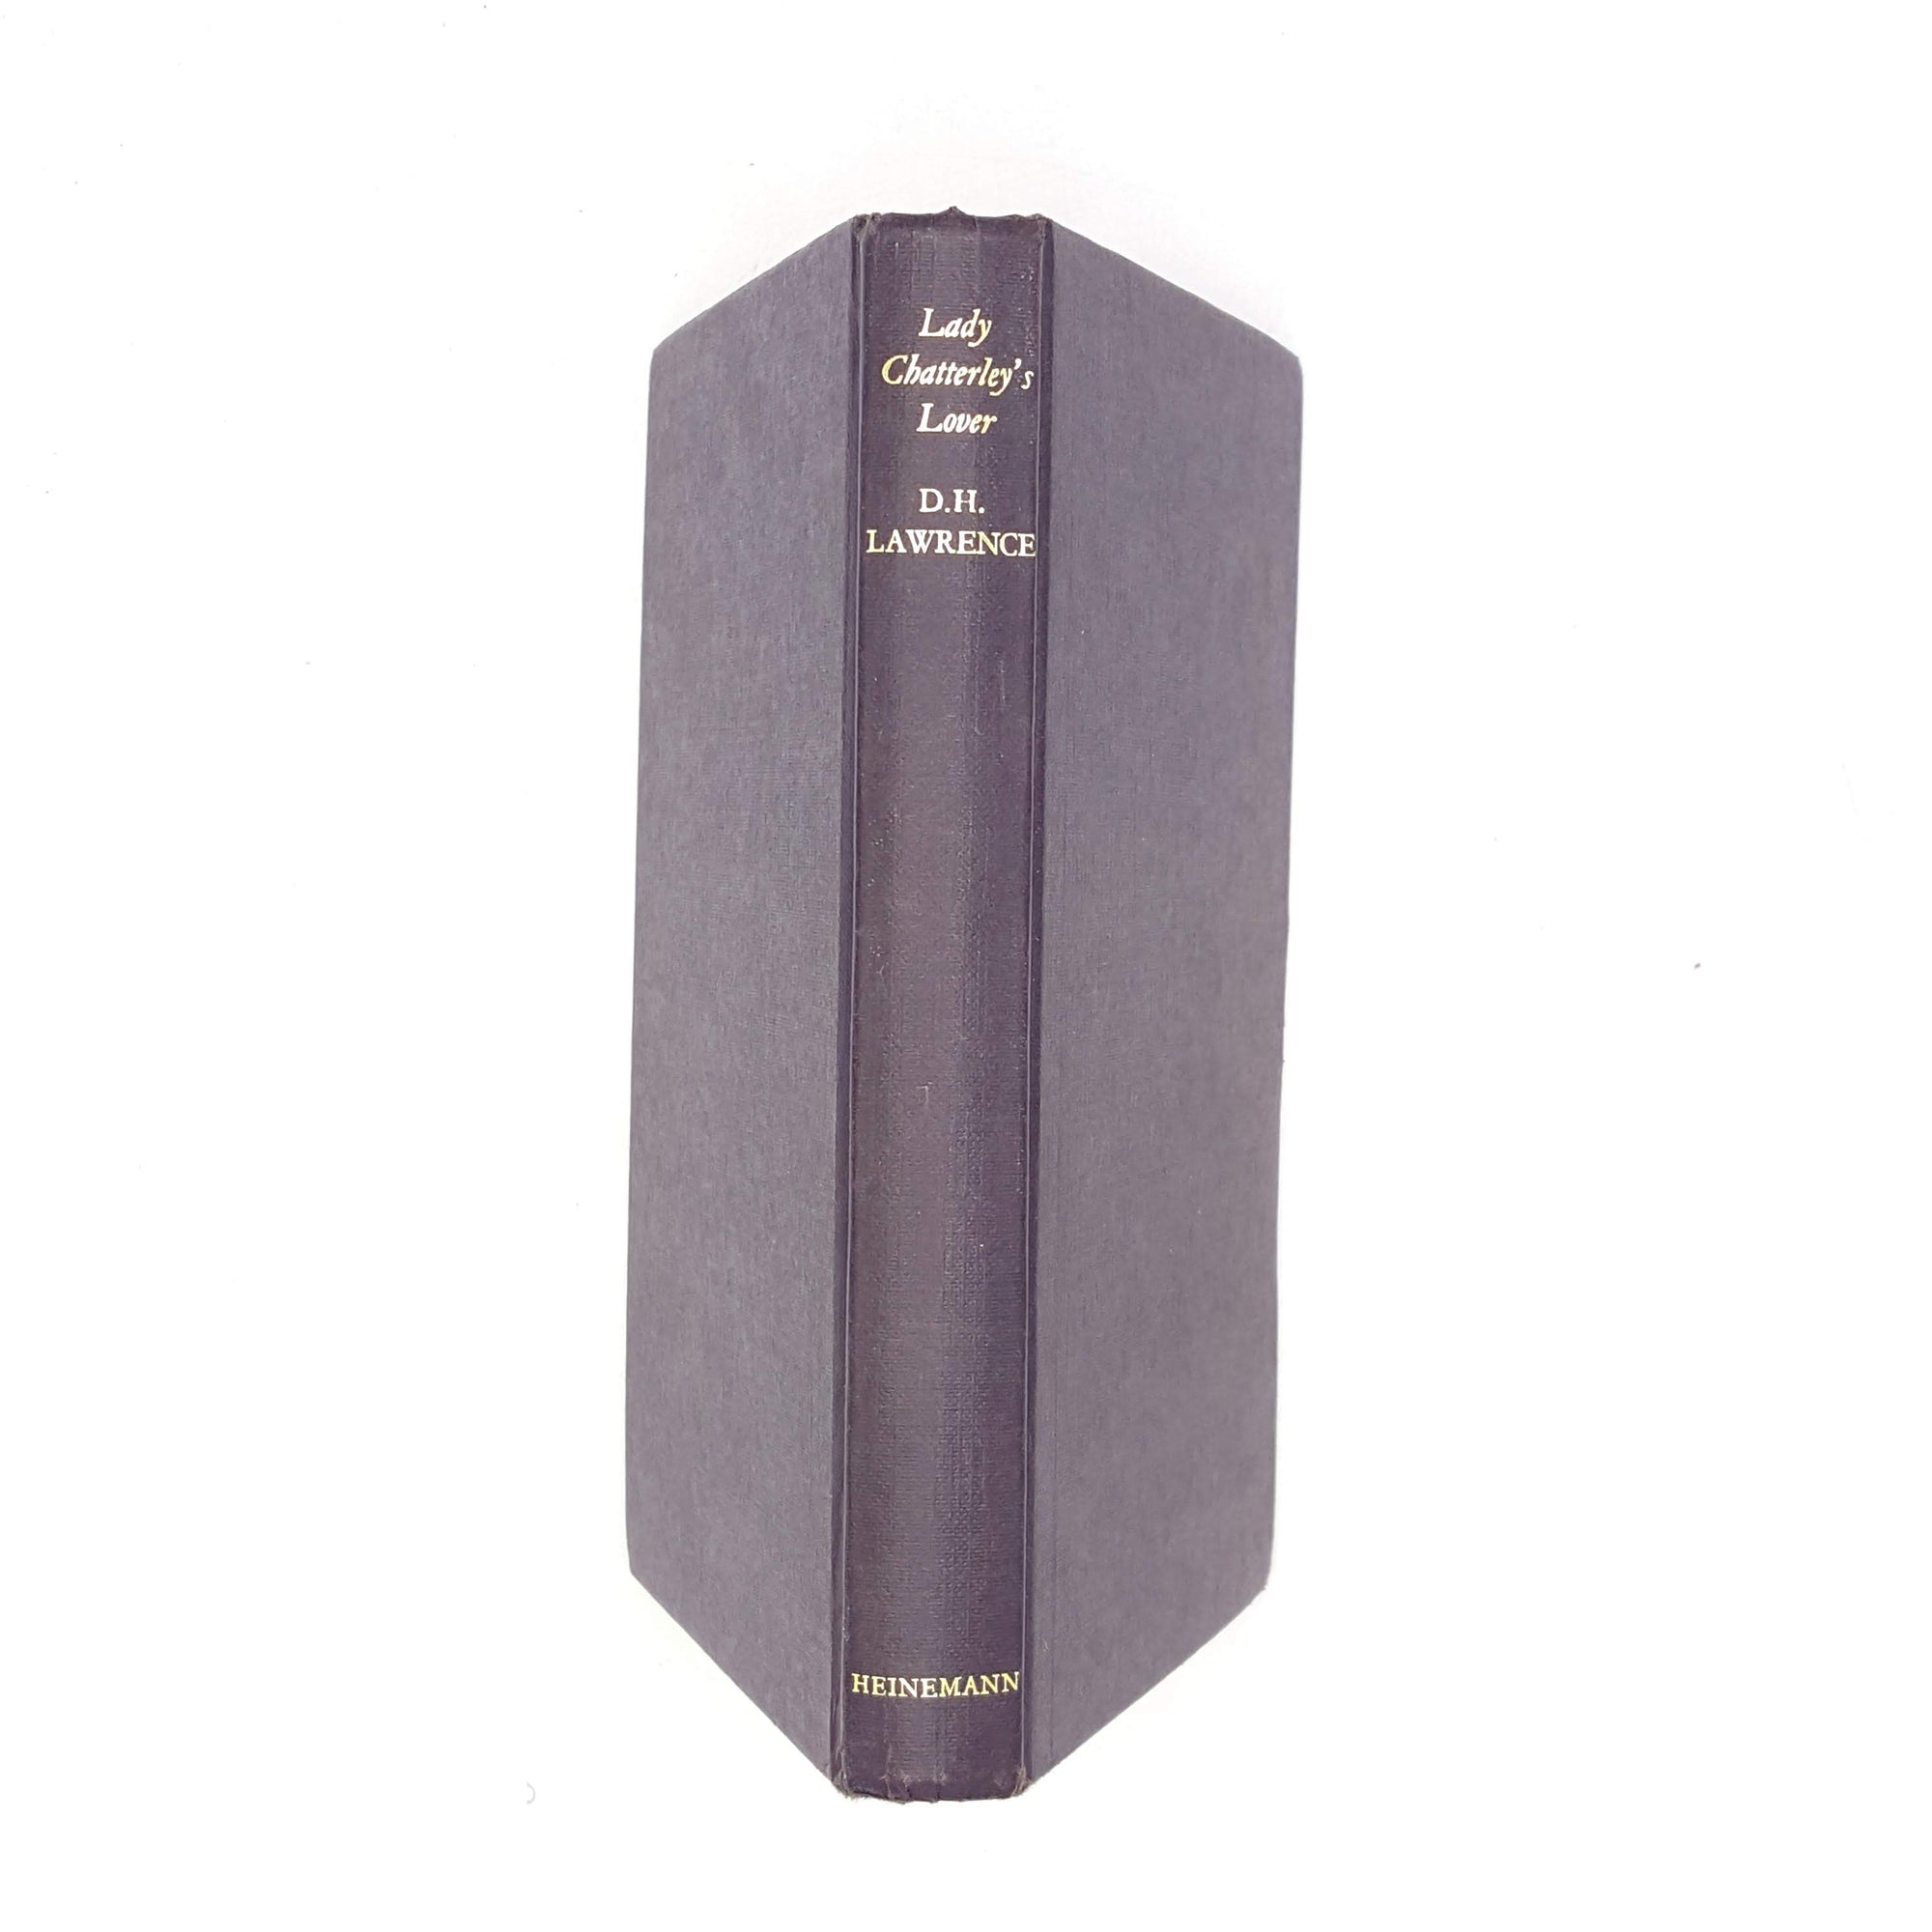 D. H. Lawrence's Lady Chatterley's Lover Heinemann Edition